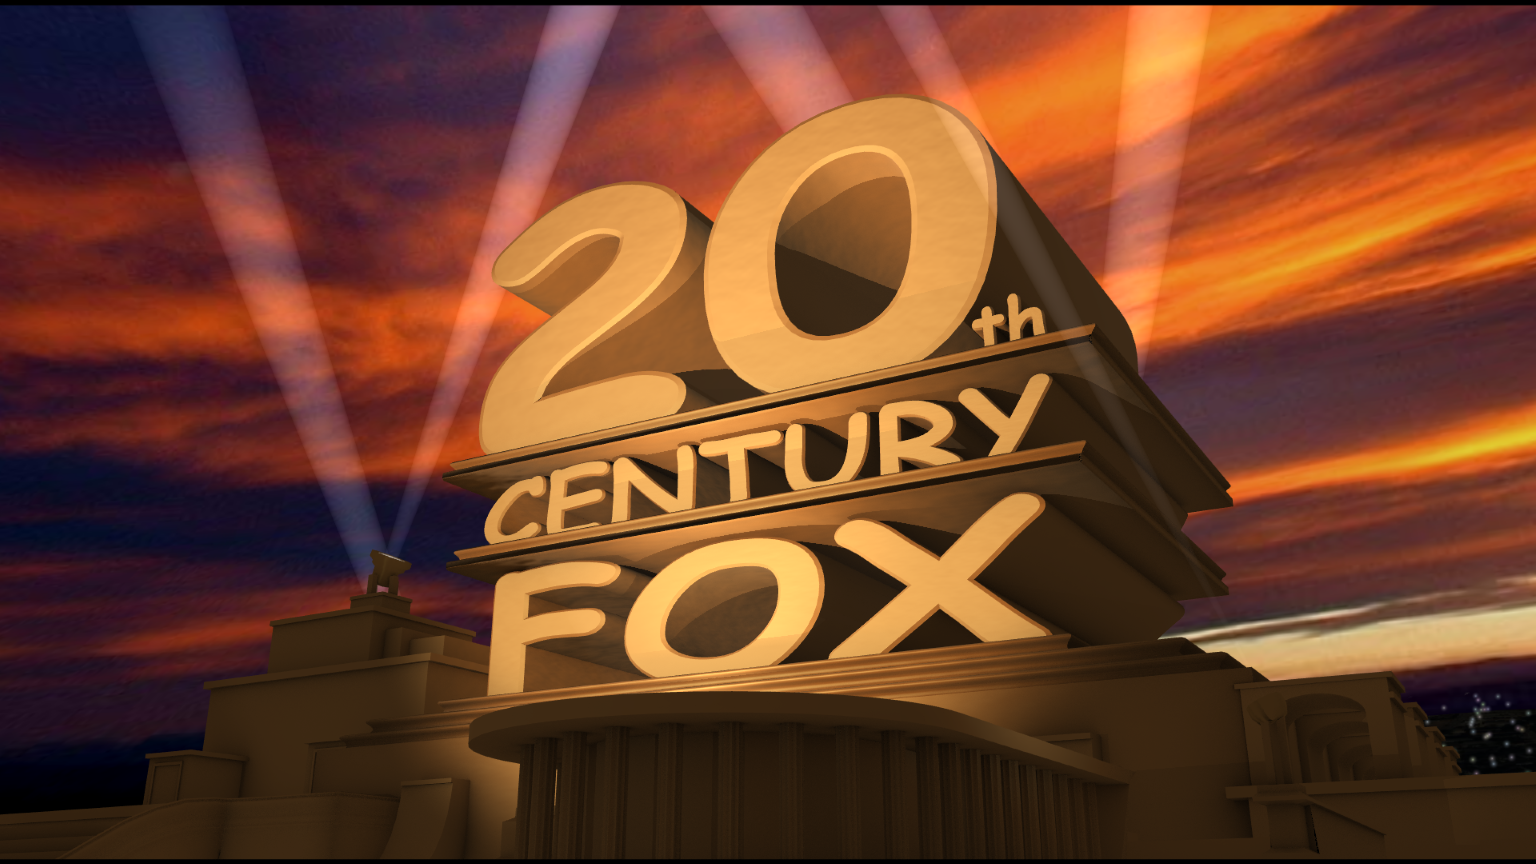 20th Century Fox | Comic Sans | Know Your Meme